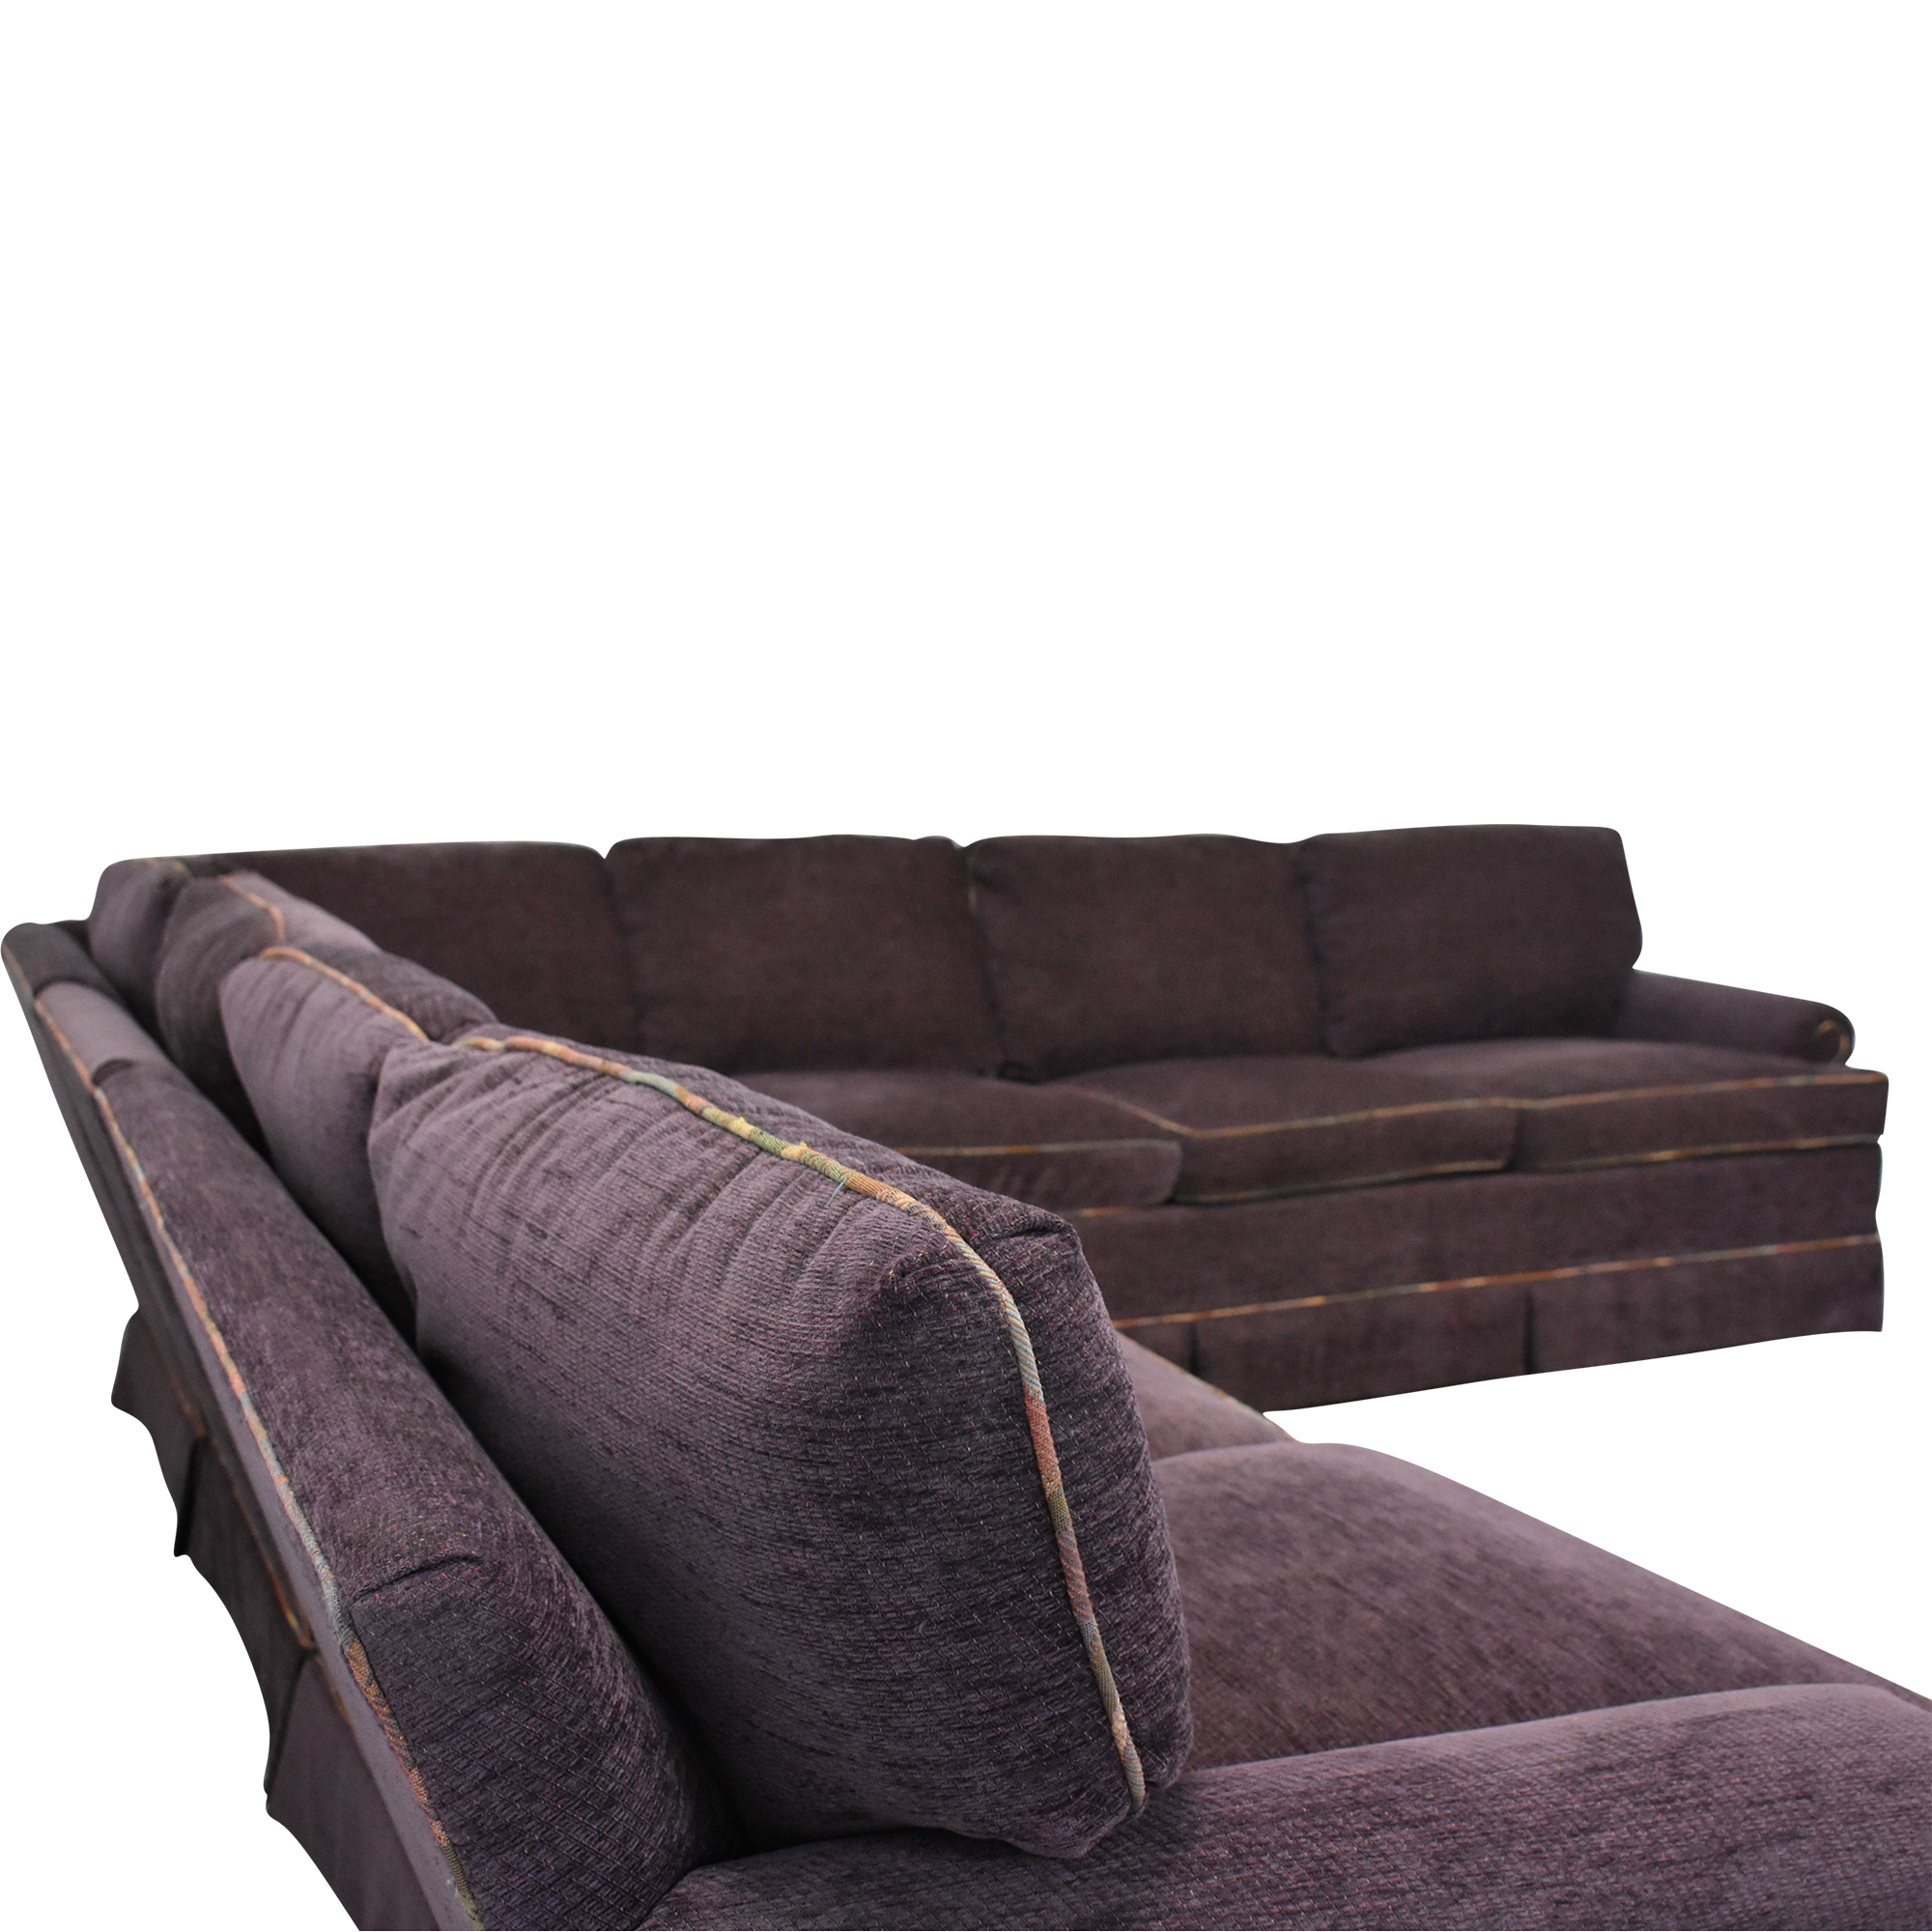 Charles Stewart Company Charles Stewart Company L Shaped Sectional Sofa Sectionals